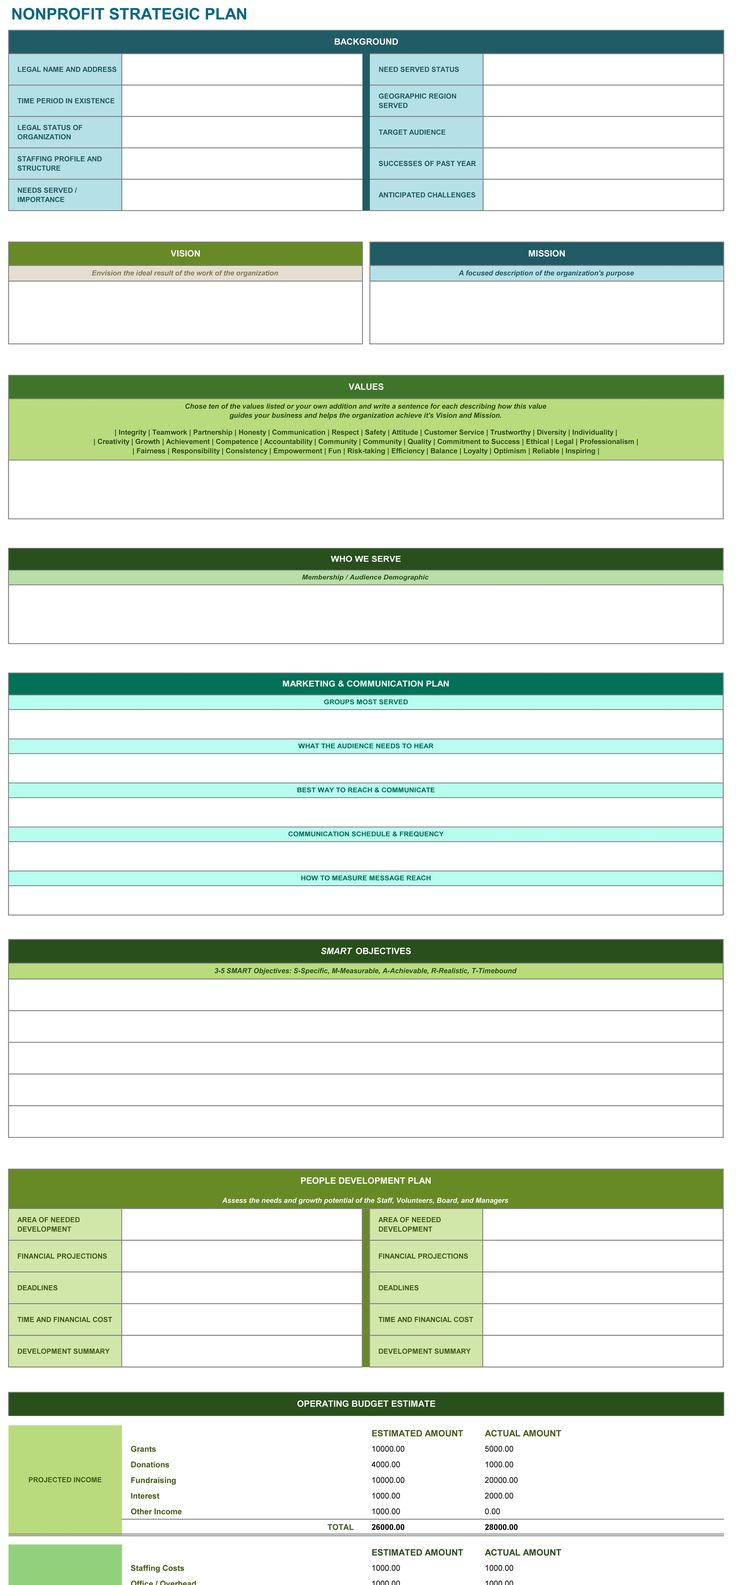 non-profit strategic plan excel template #FinanceTemplate